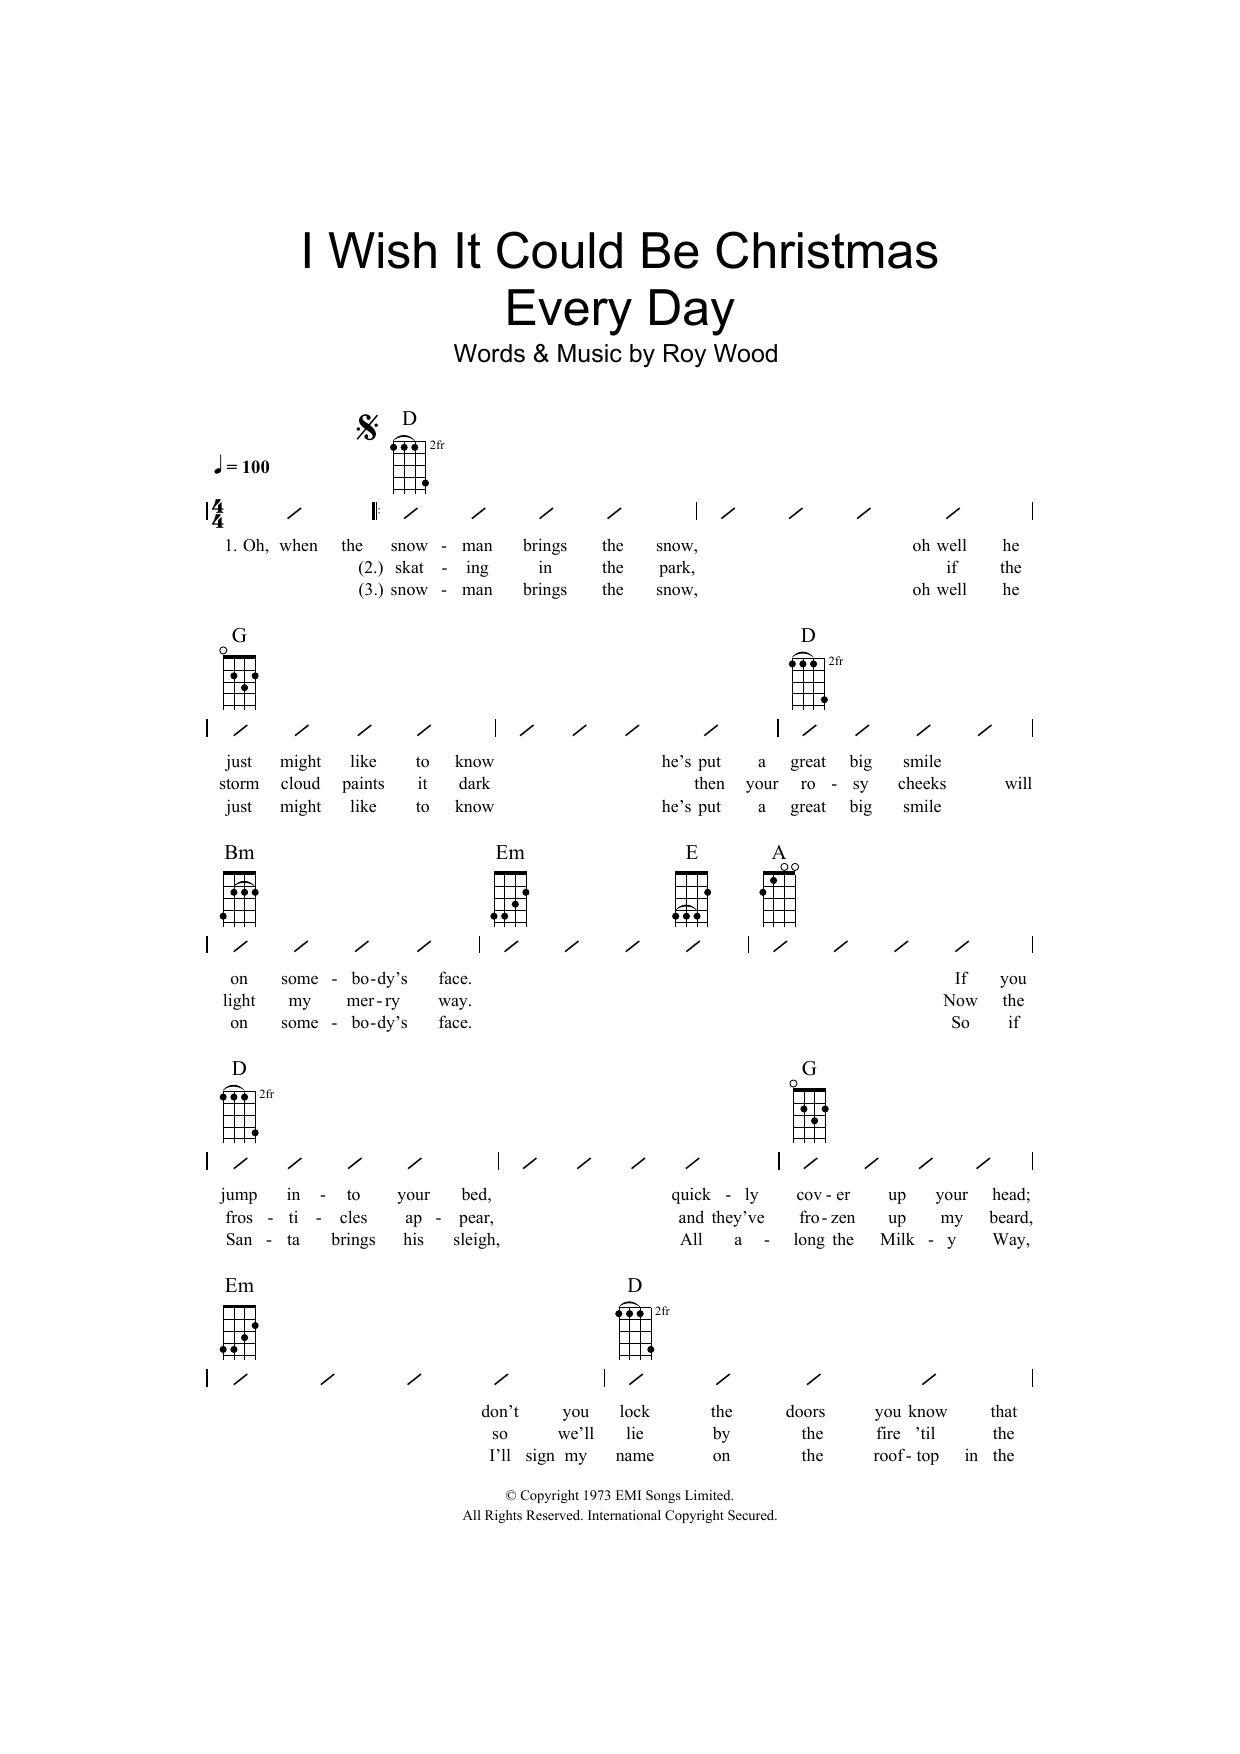 I Wish It Could Be Christmas Every Day Sheet Music | Wizzard ...